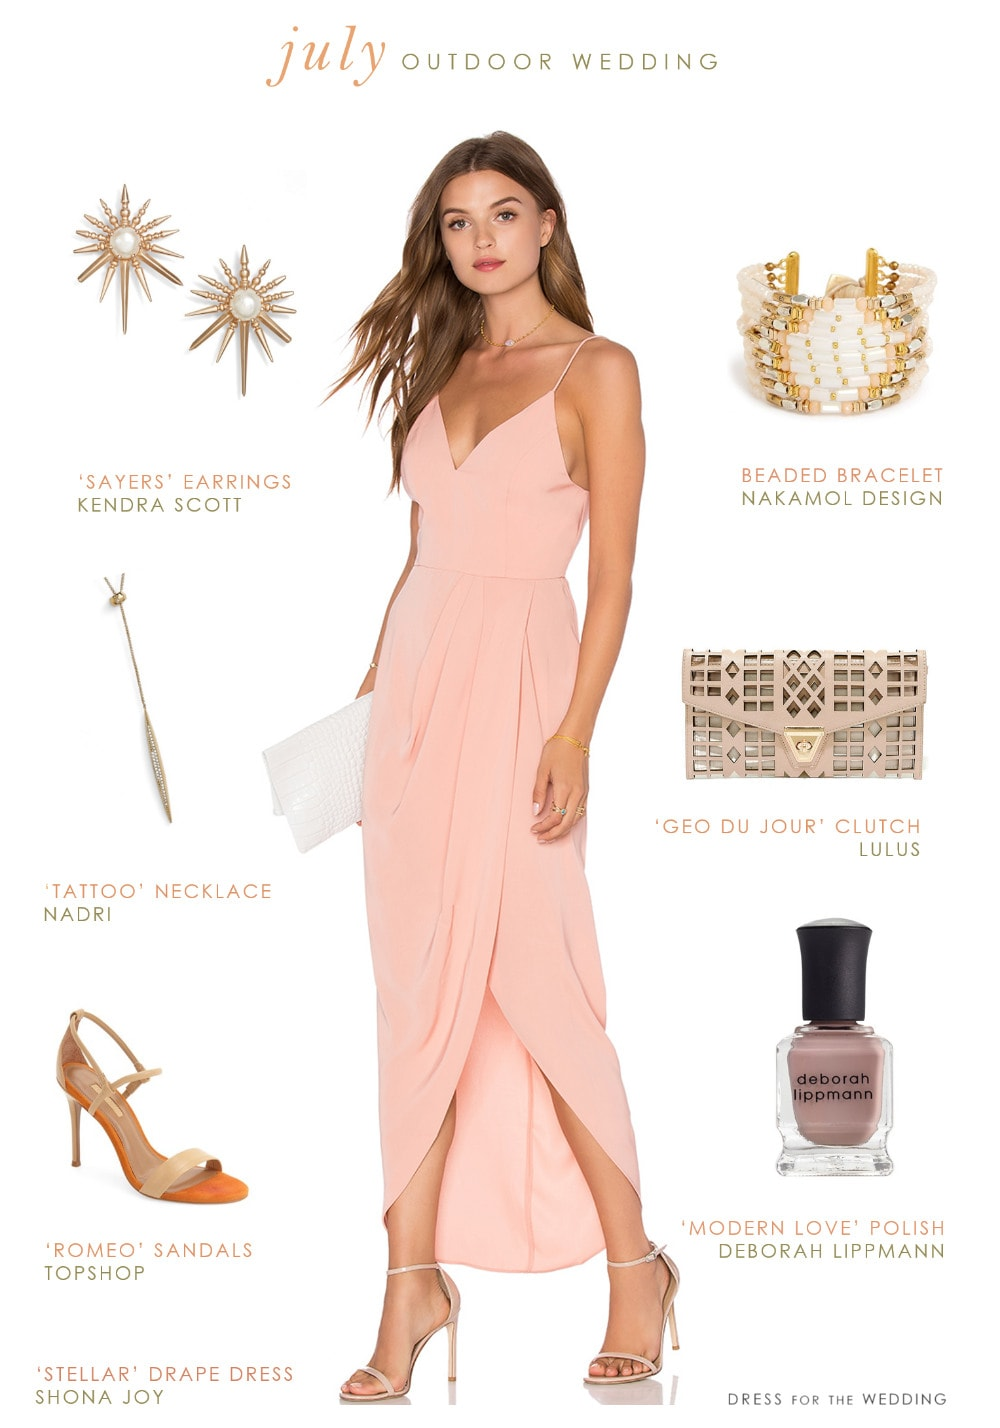 wear outdoor july wedding fall wedding guest dresses What To Wear to a July Outdoor Wedding